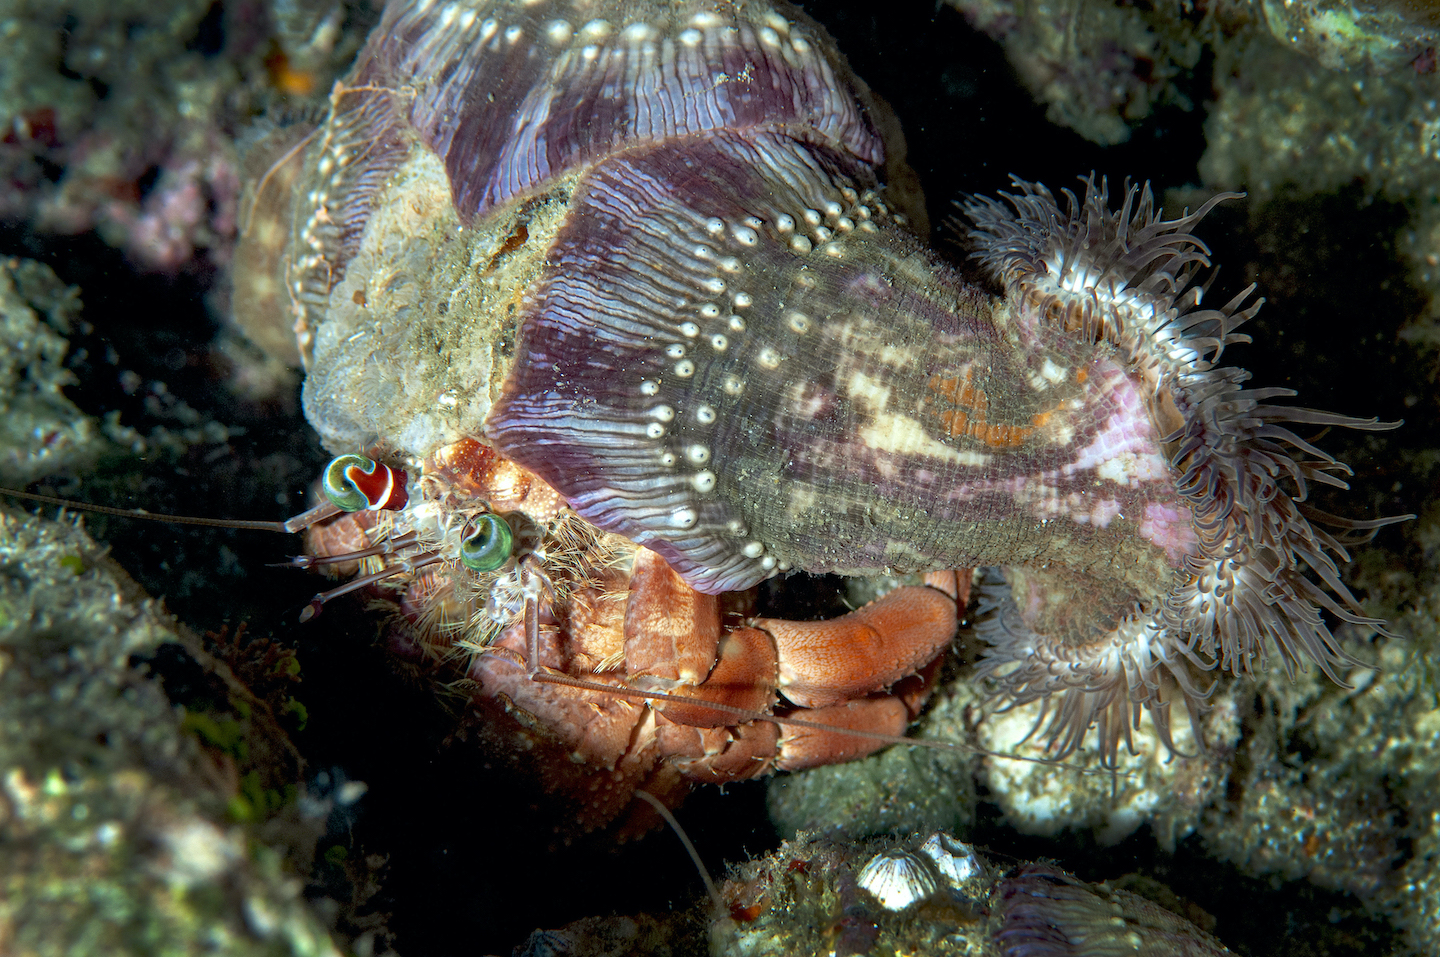 A Dardanus hermit crab heavy with anemones on its shell. Beneficial as their presence may be, carrying them around as it forages is not an easy task.  Cover photo: If a hermit crab has, sitting upon its shell, two types of algae, a couple of hydroids, a tunicate, and a feather star, can we not call it an ecosystem?